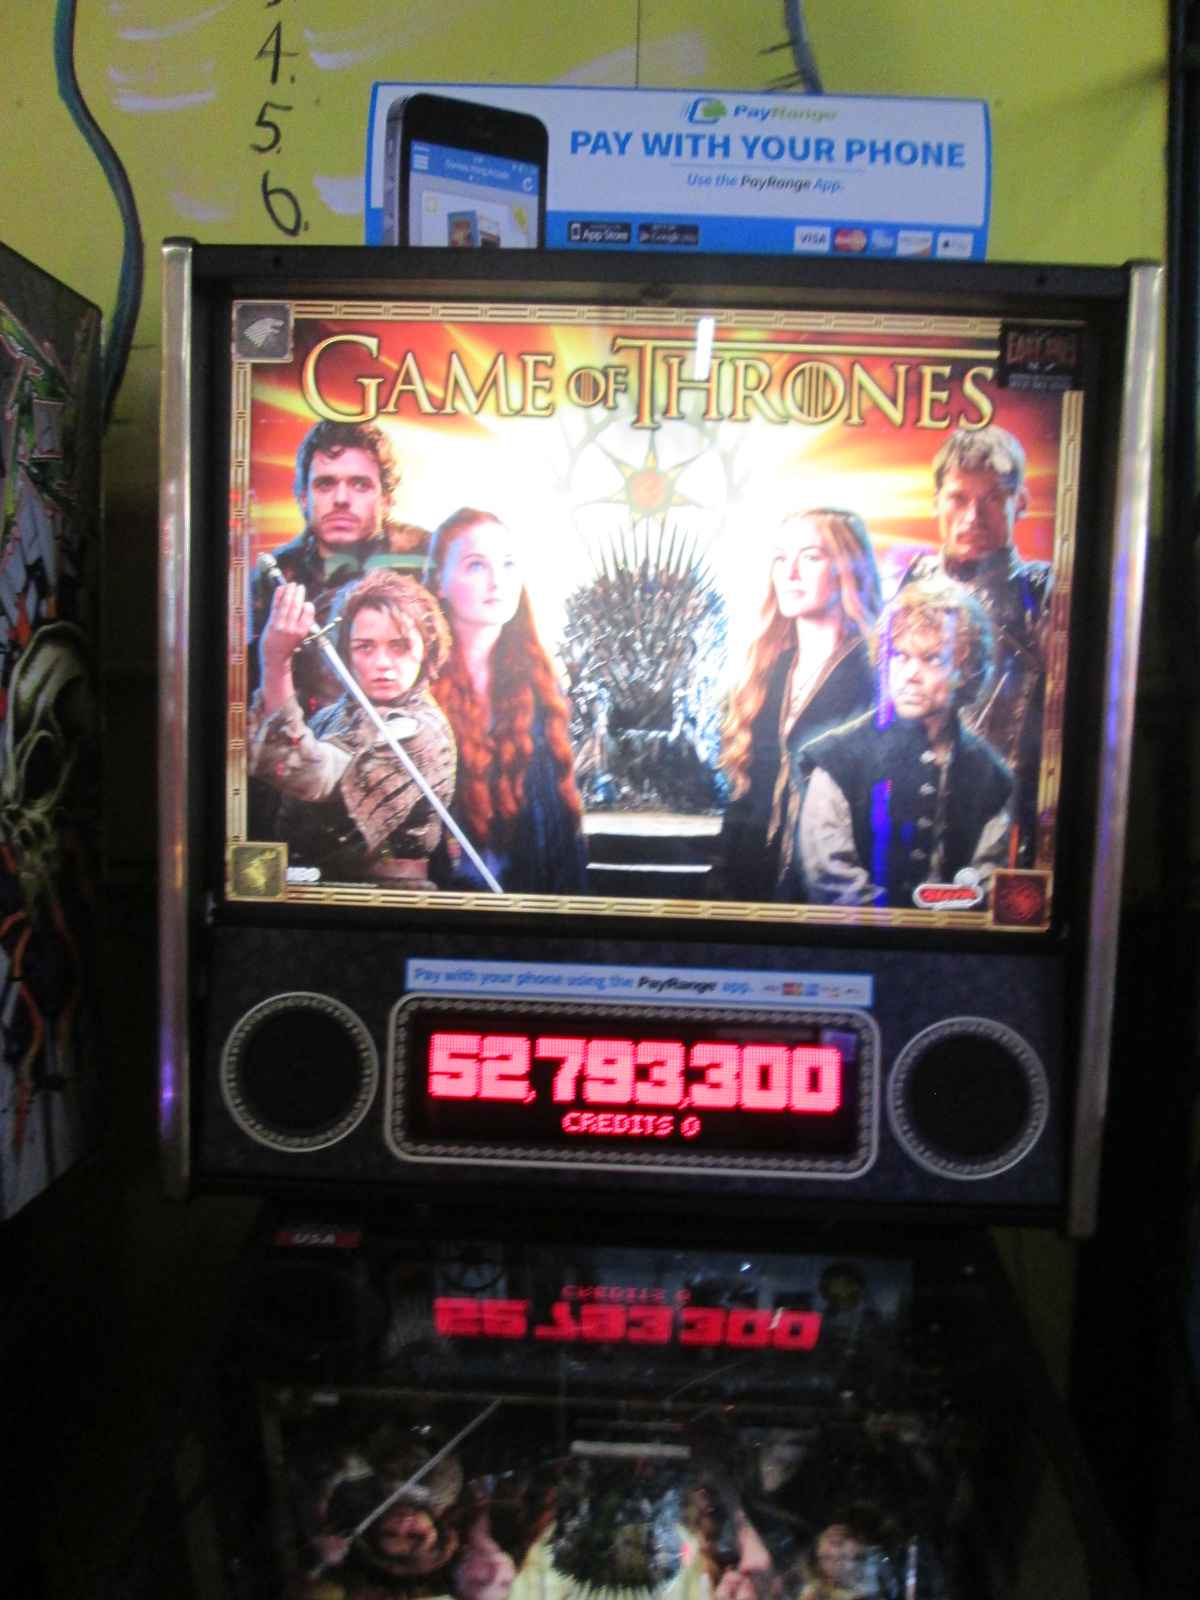 ed1475: Game Of Thrones (Pinball: 3 Balls) 52,793,300 points on 2016-08-25 18:59:16